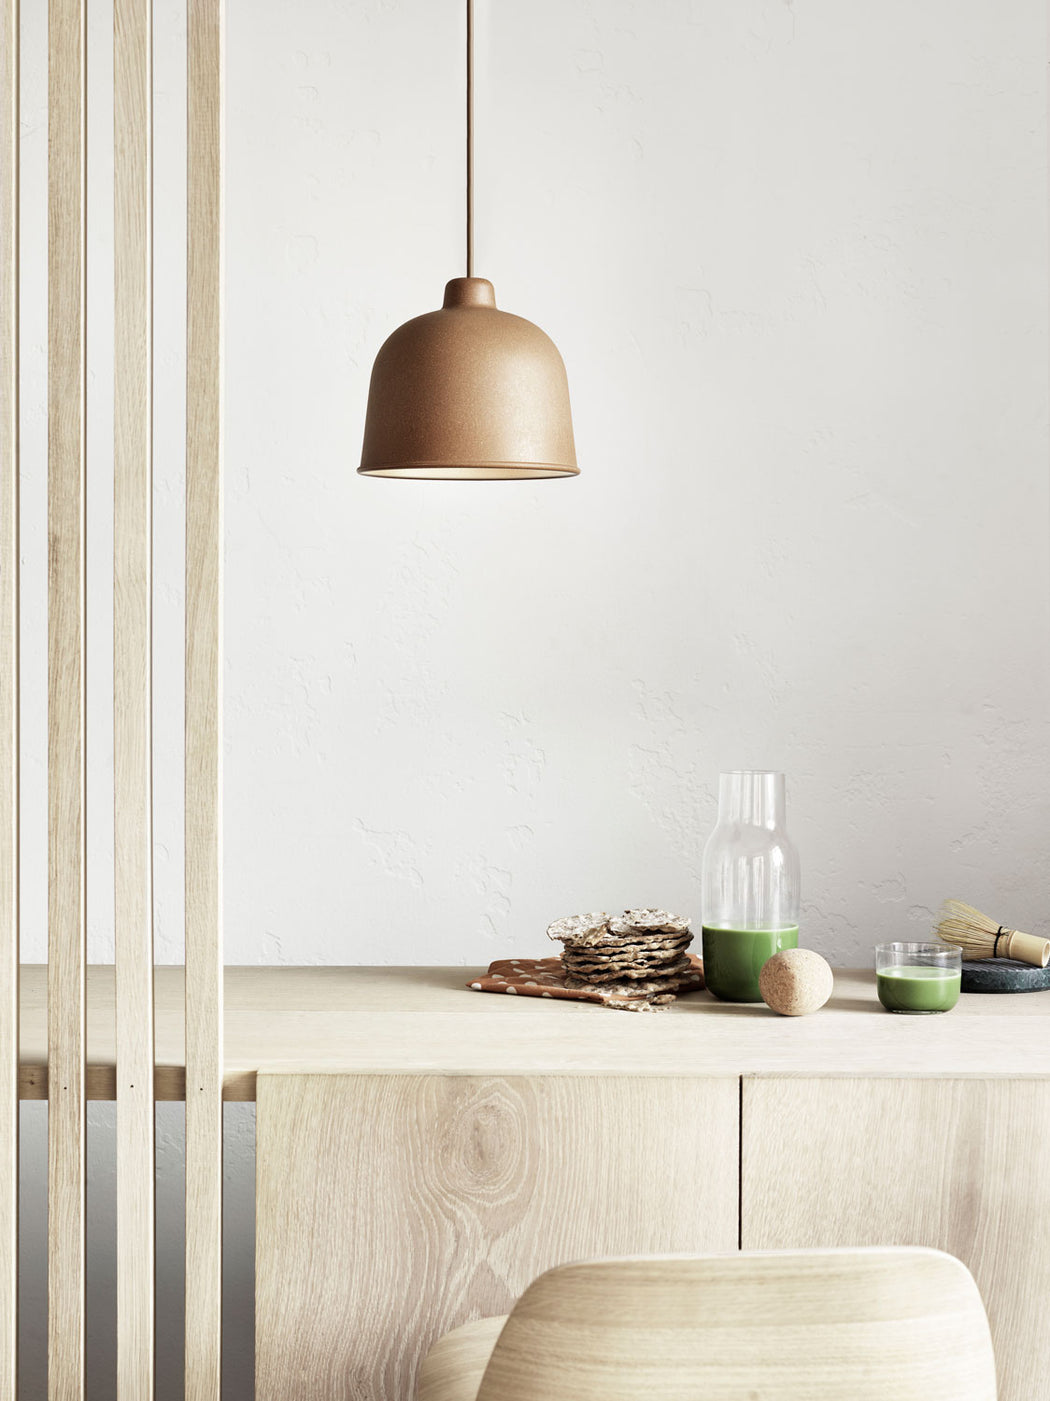 Grain Pendant Light, Lifestyle